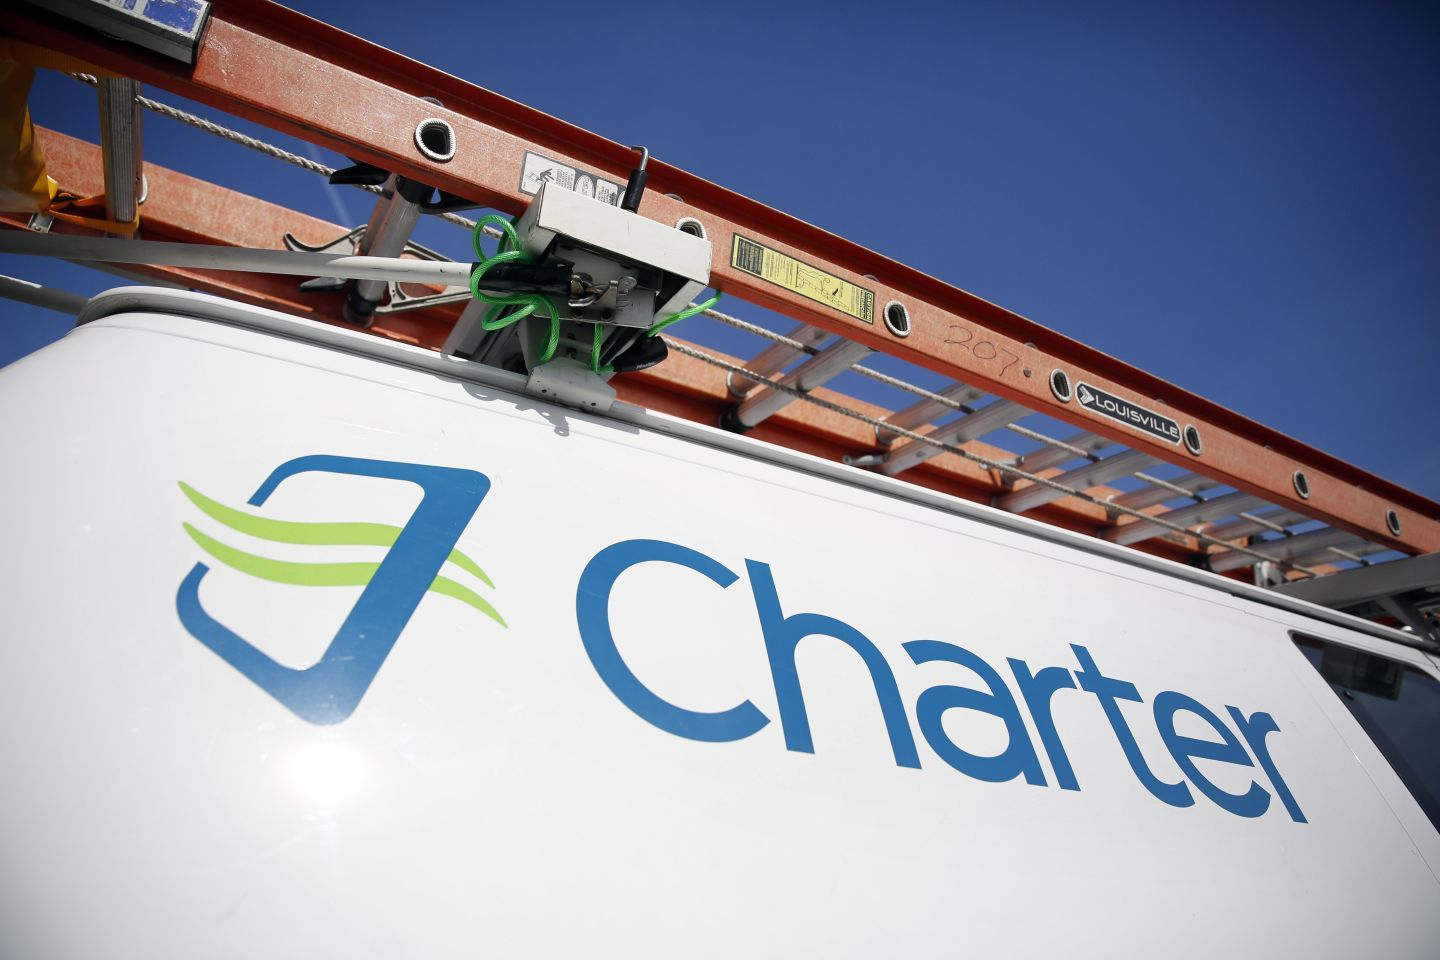 Charter declines offer from Sprint parent Softbank